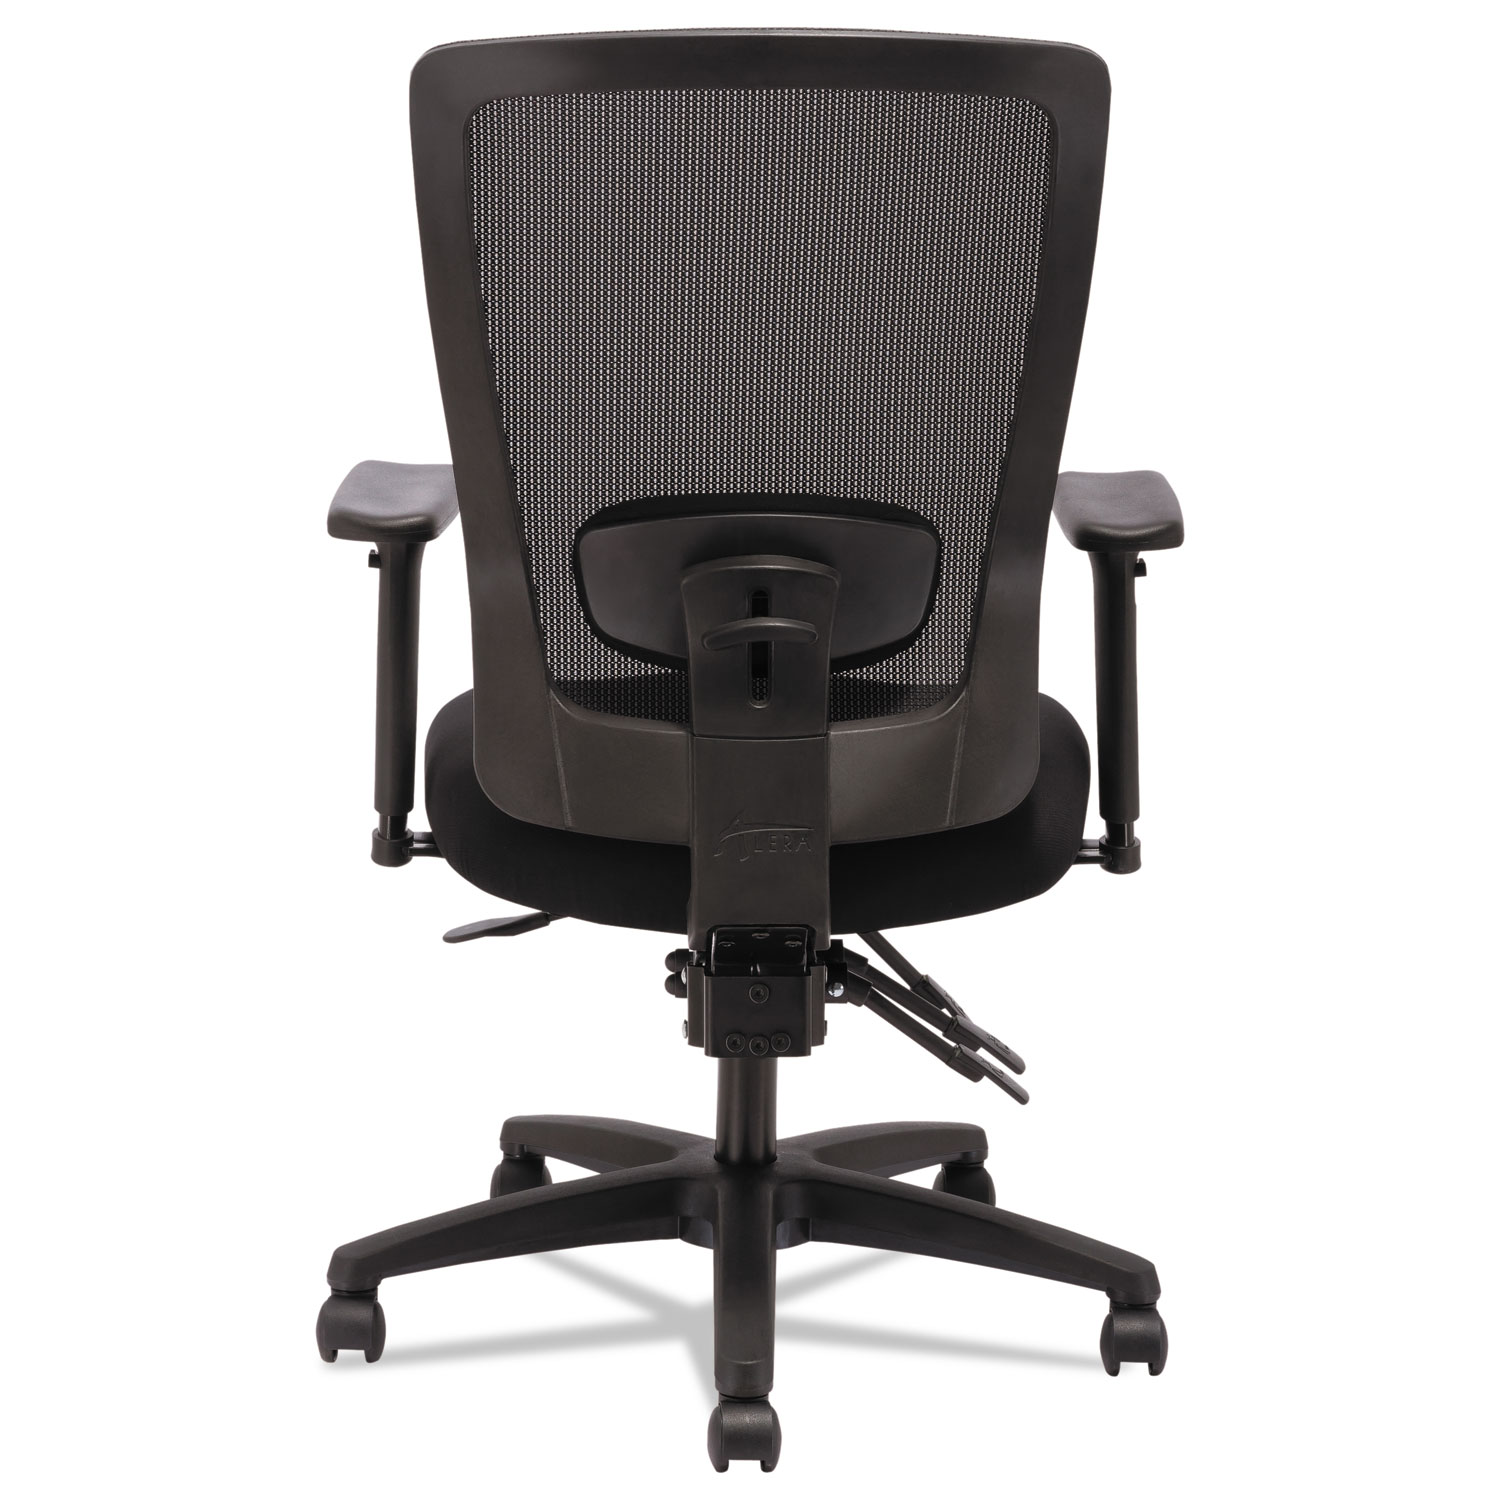 alera office chairs review ergonomic drafting chair canada envy series mesh high back multifunction by